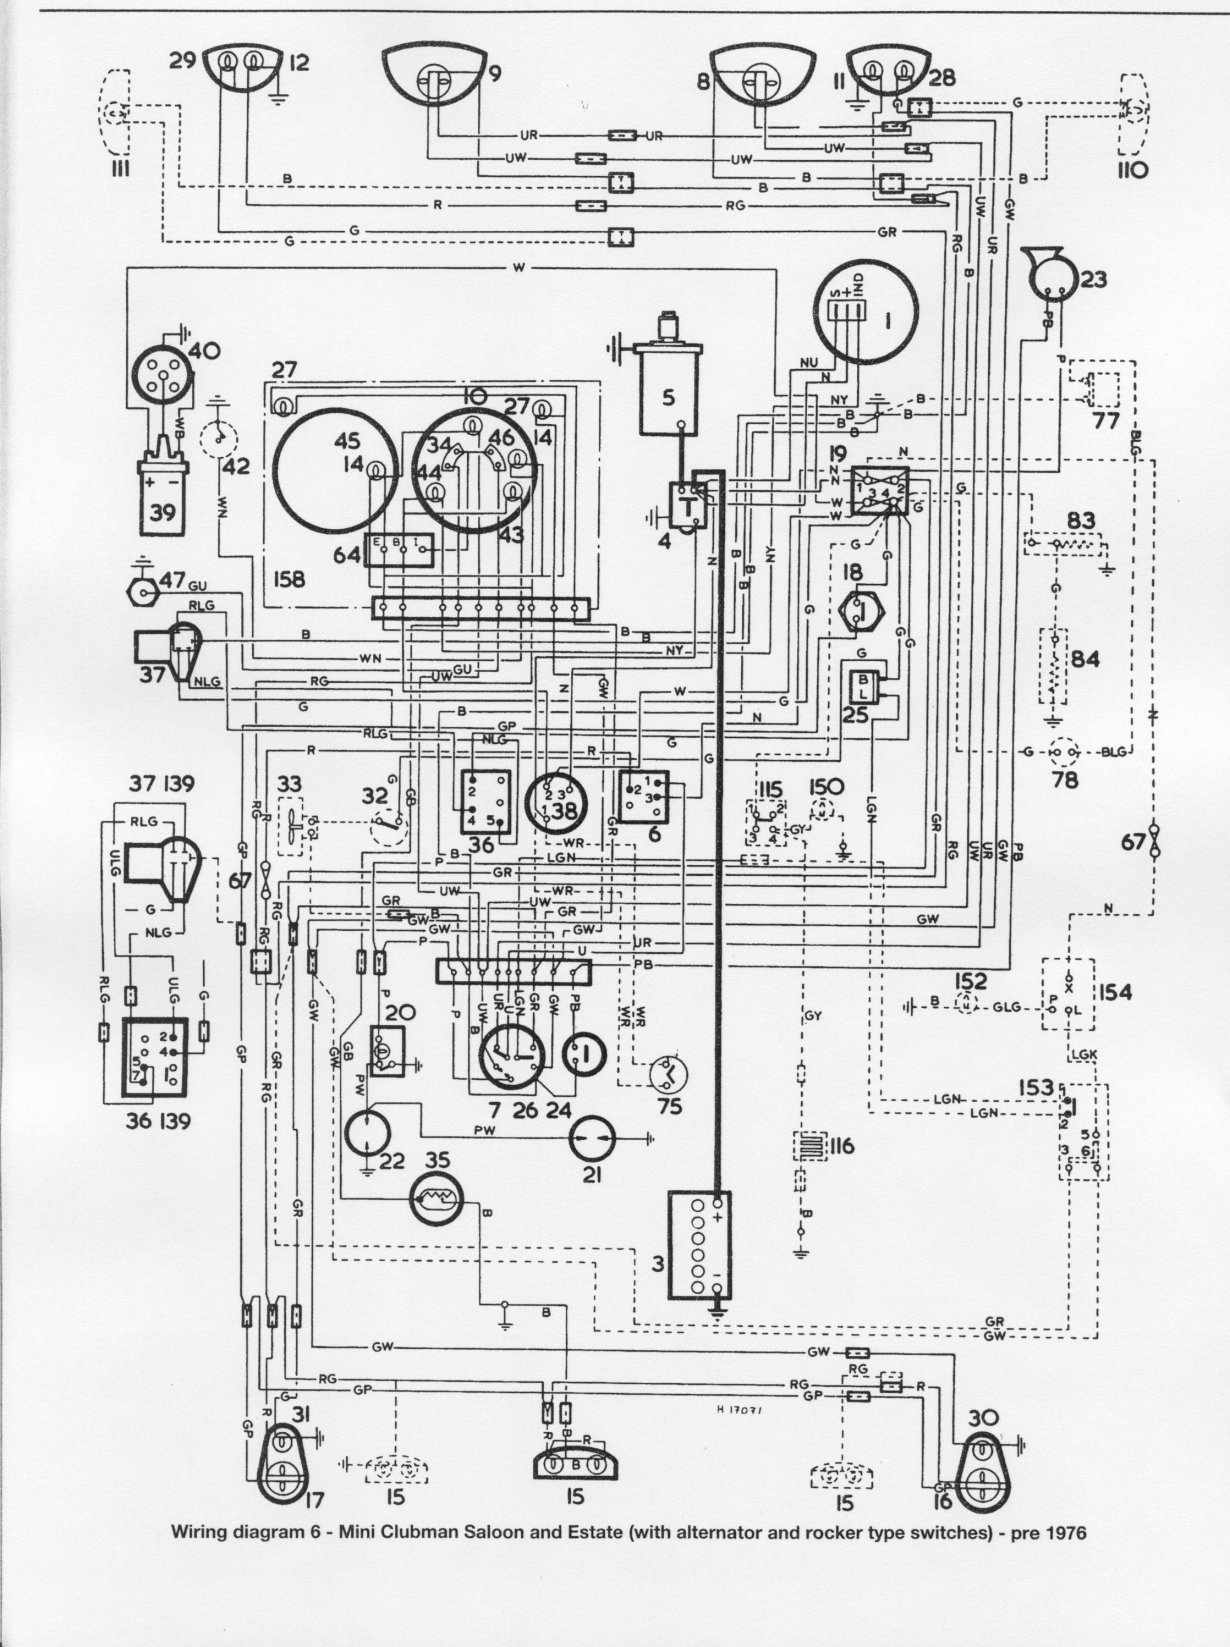 hight resolution of 1992 mini cooper wiring diagram